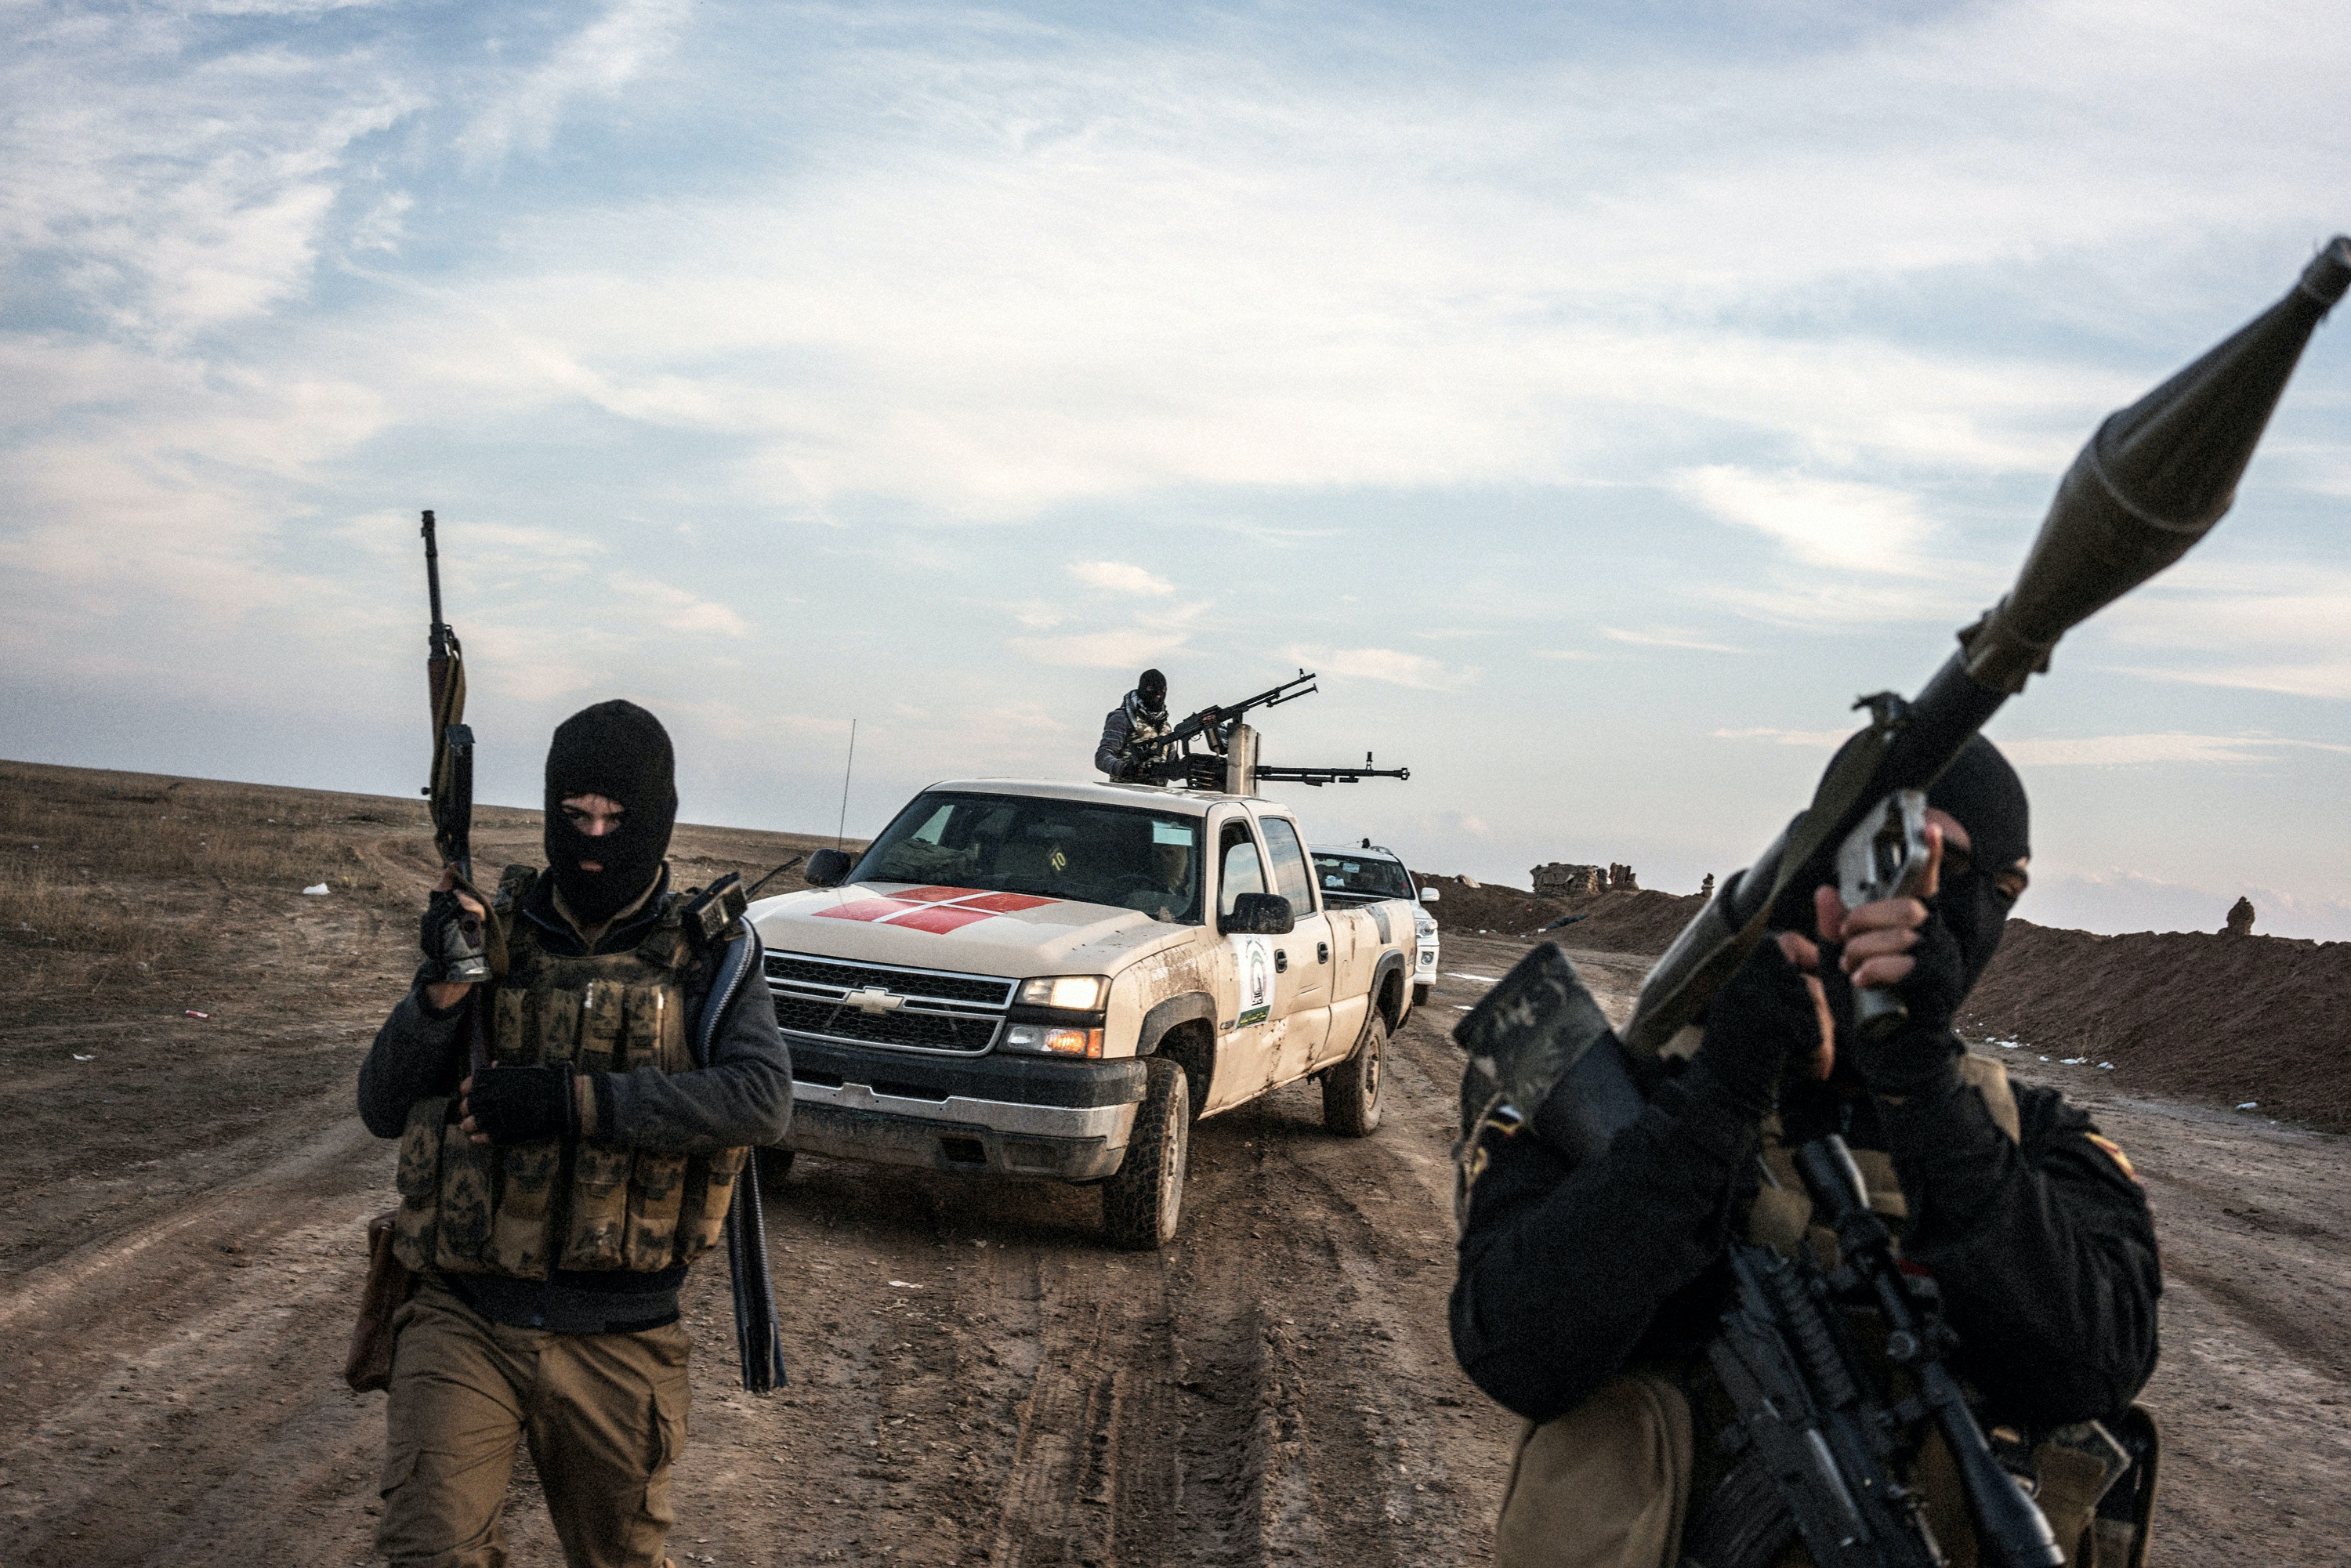 IRAQ. Makhmour. November 19, 2015. Sunni fighters opposing the Islamic State take positions at the front line near the IS-controlled village of Haj Ali in the southern Mosul countryside.